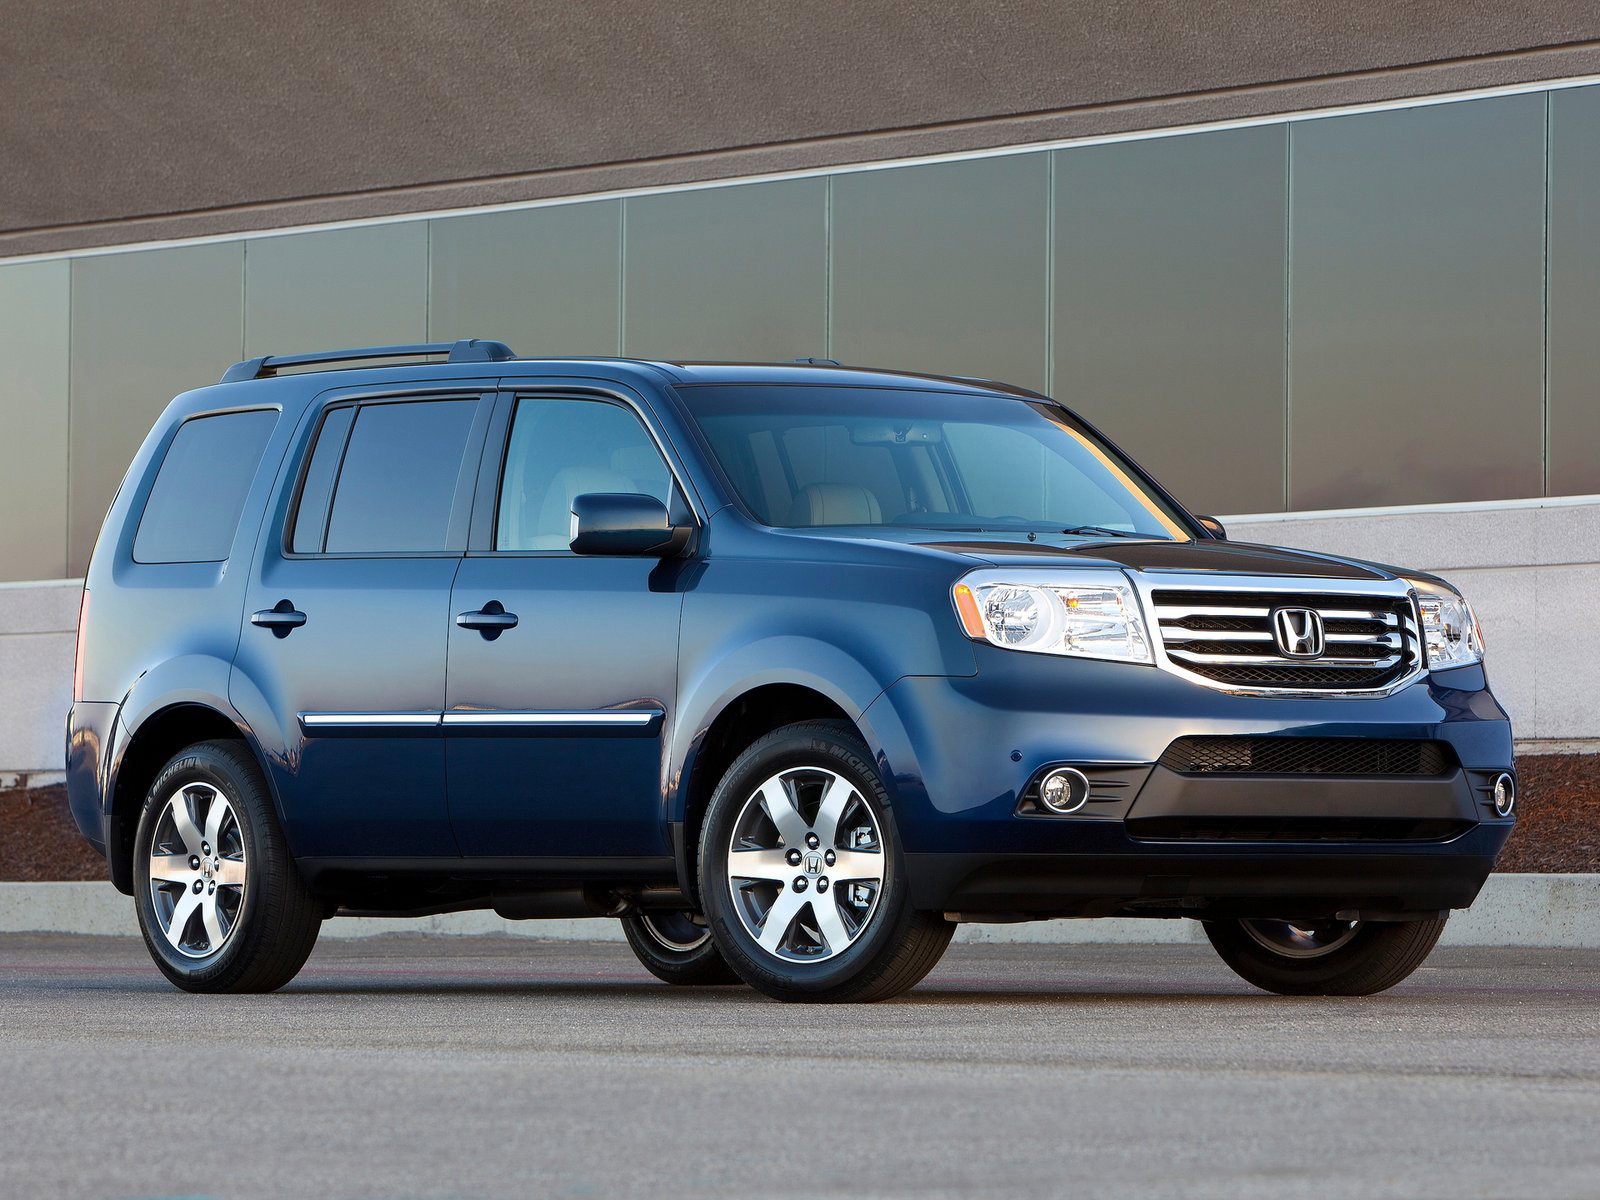 2012 Honda Pilot Japan Automobiles Photo Wallpapers